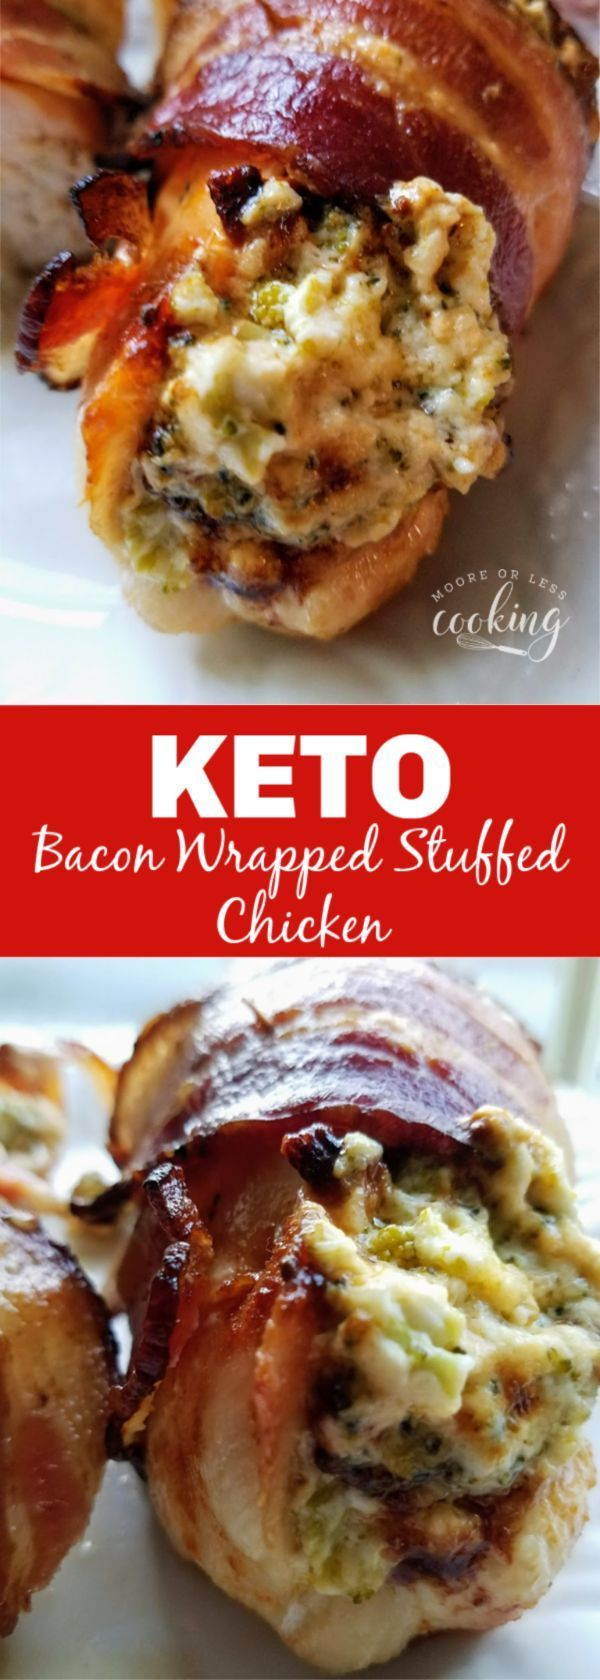 Incredibly moist and flavorful Keto Stuffed Bacon Wrapped Chicken. Broccoli and cheese stuffed chic